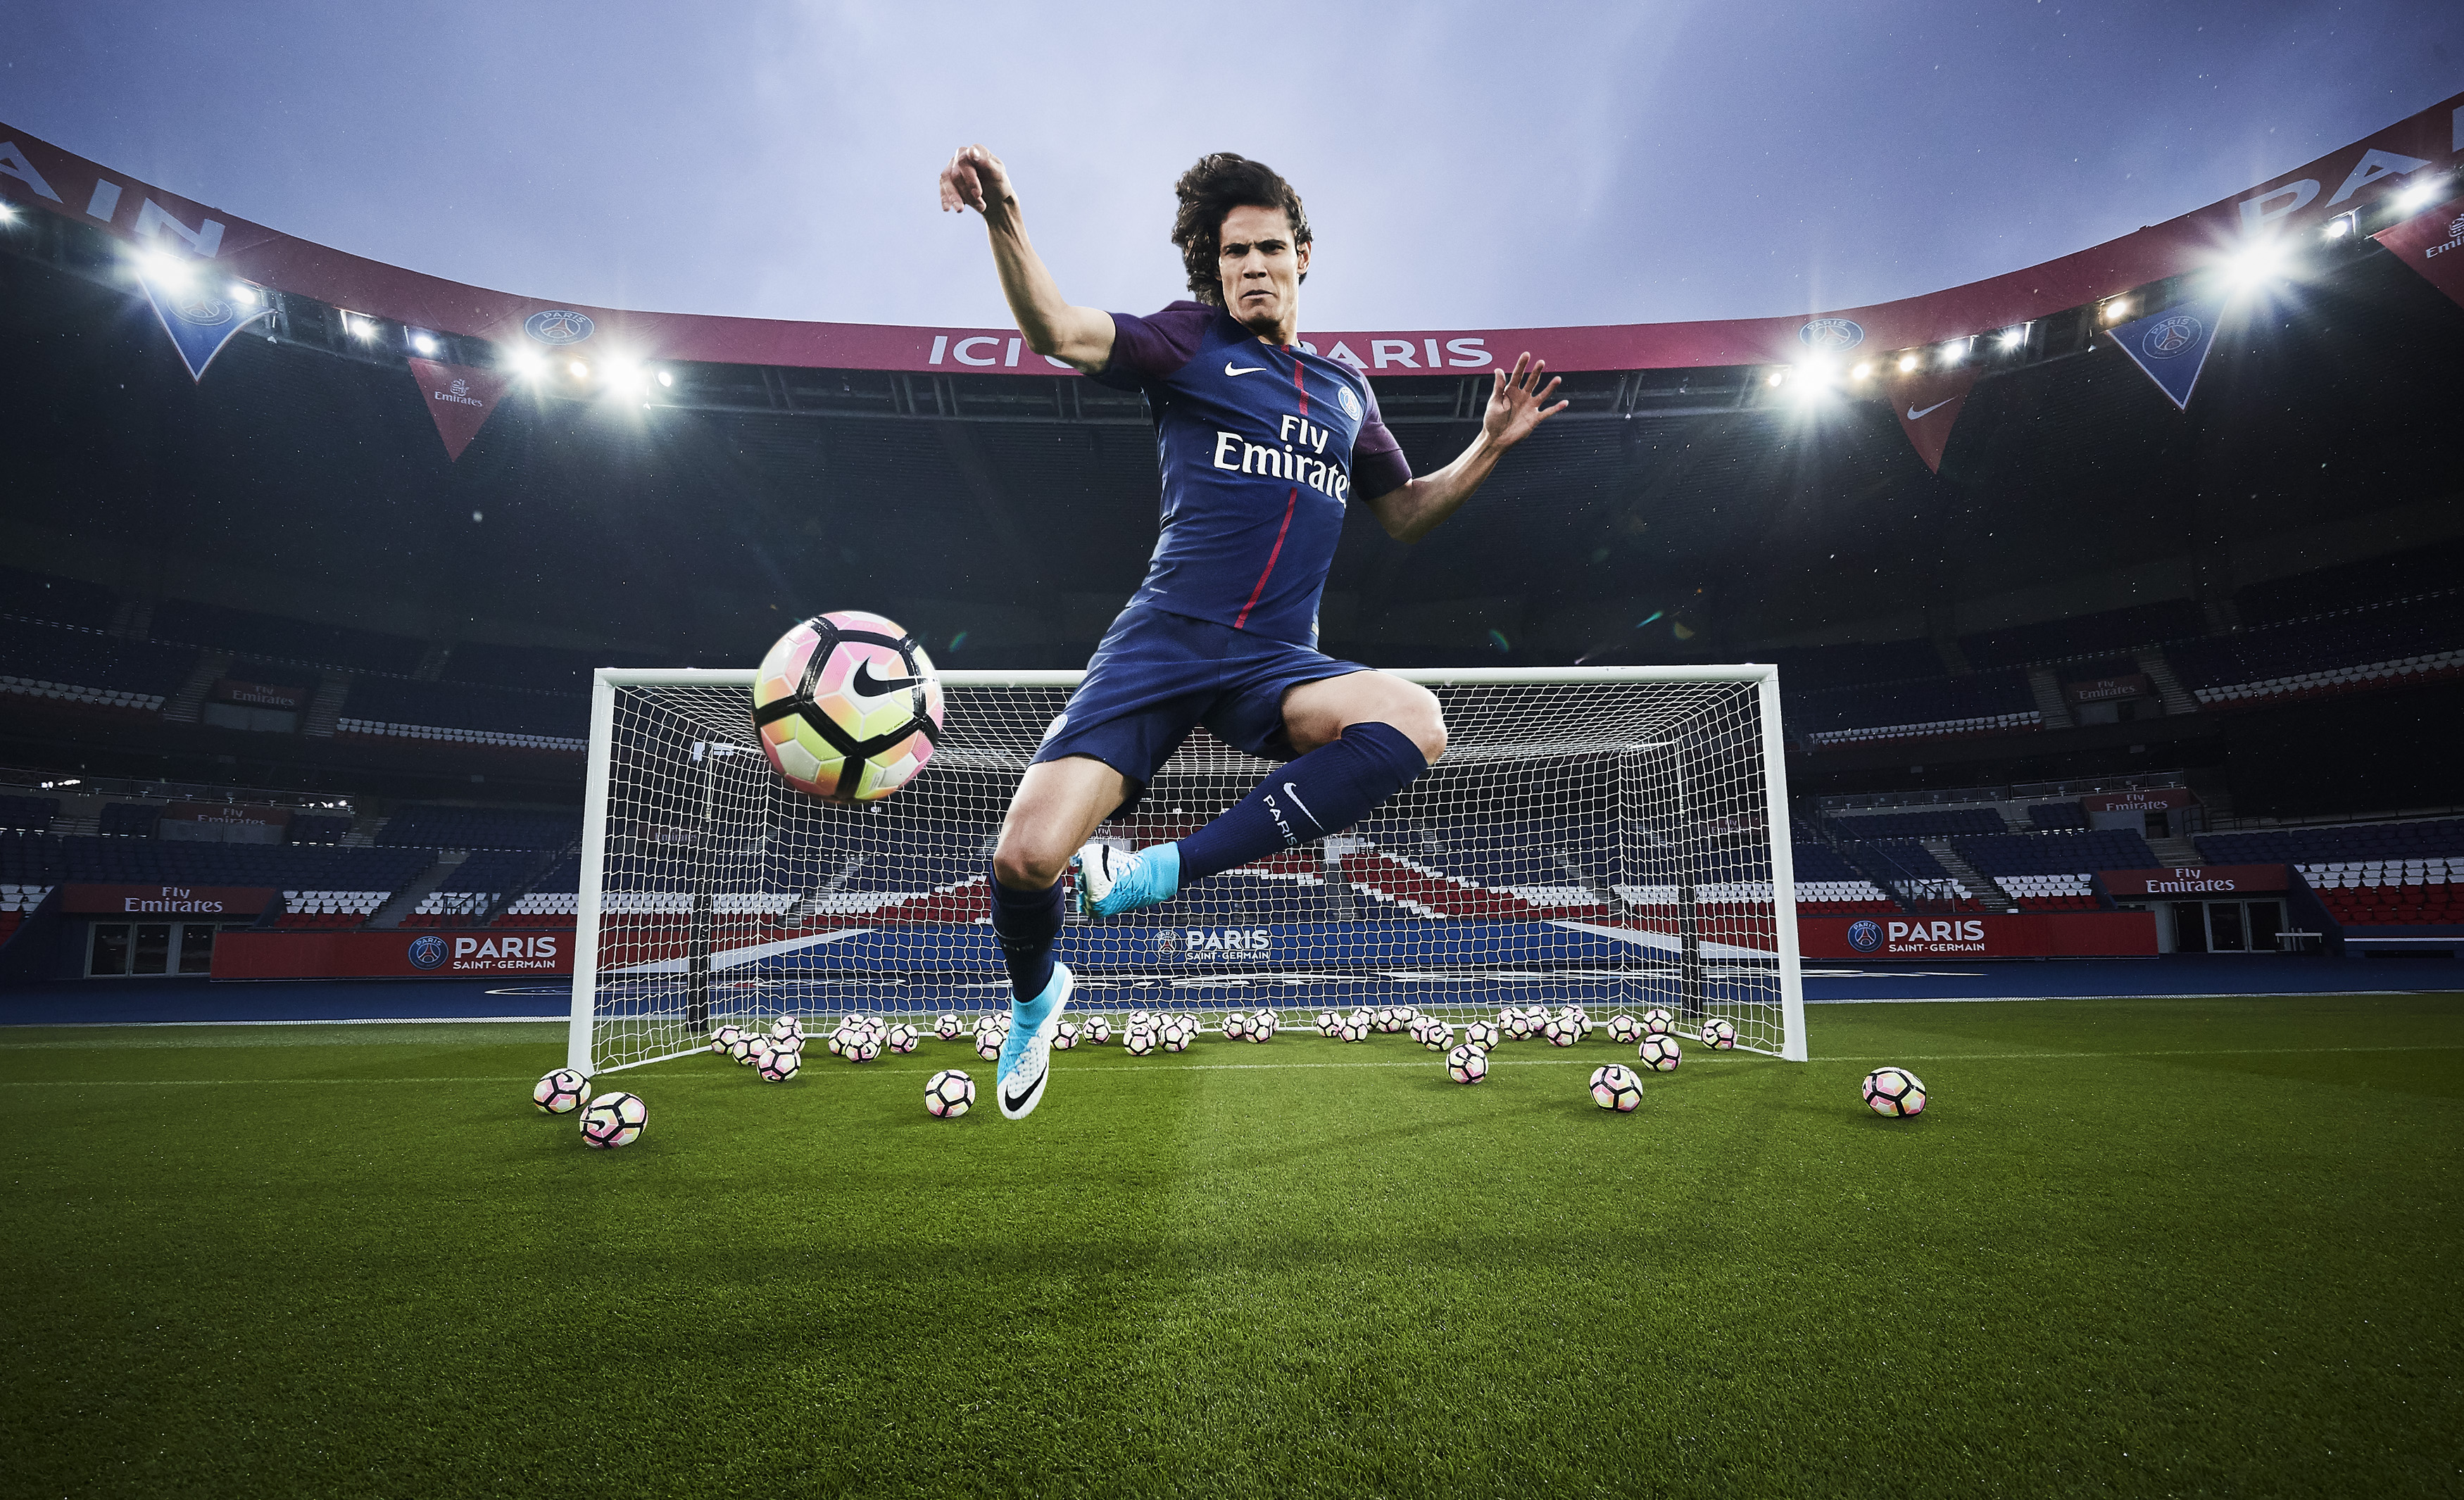 Maillot THIRD Paris Saint-Germain Edinson CAVANI